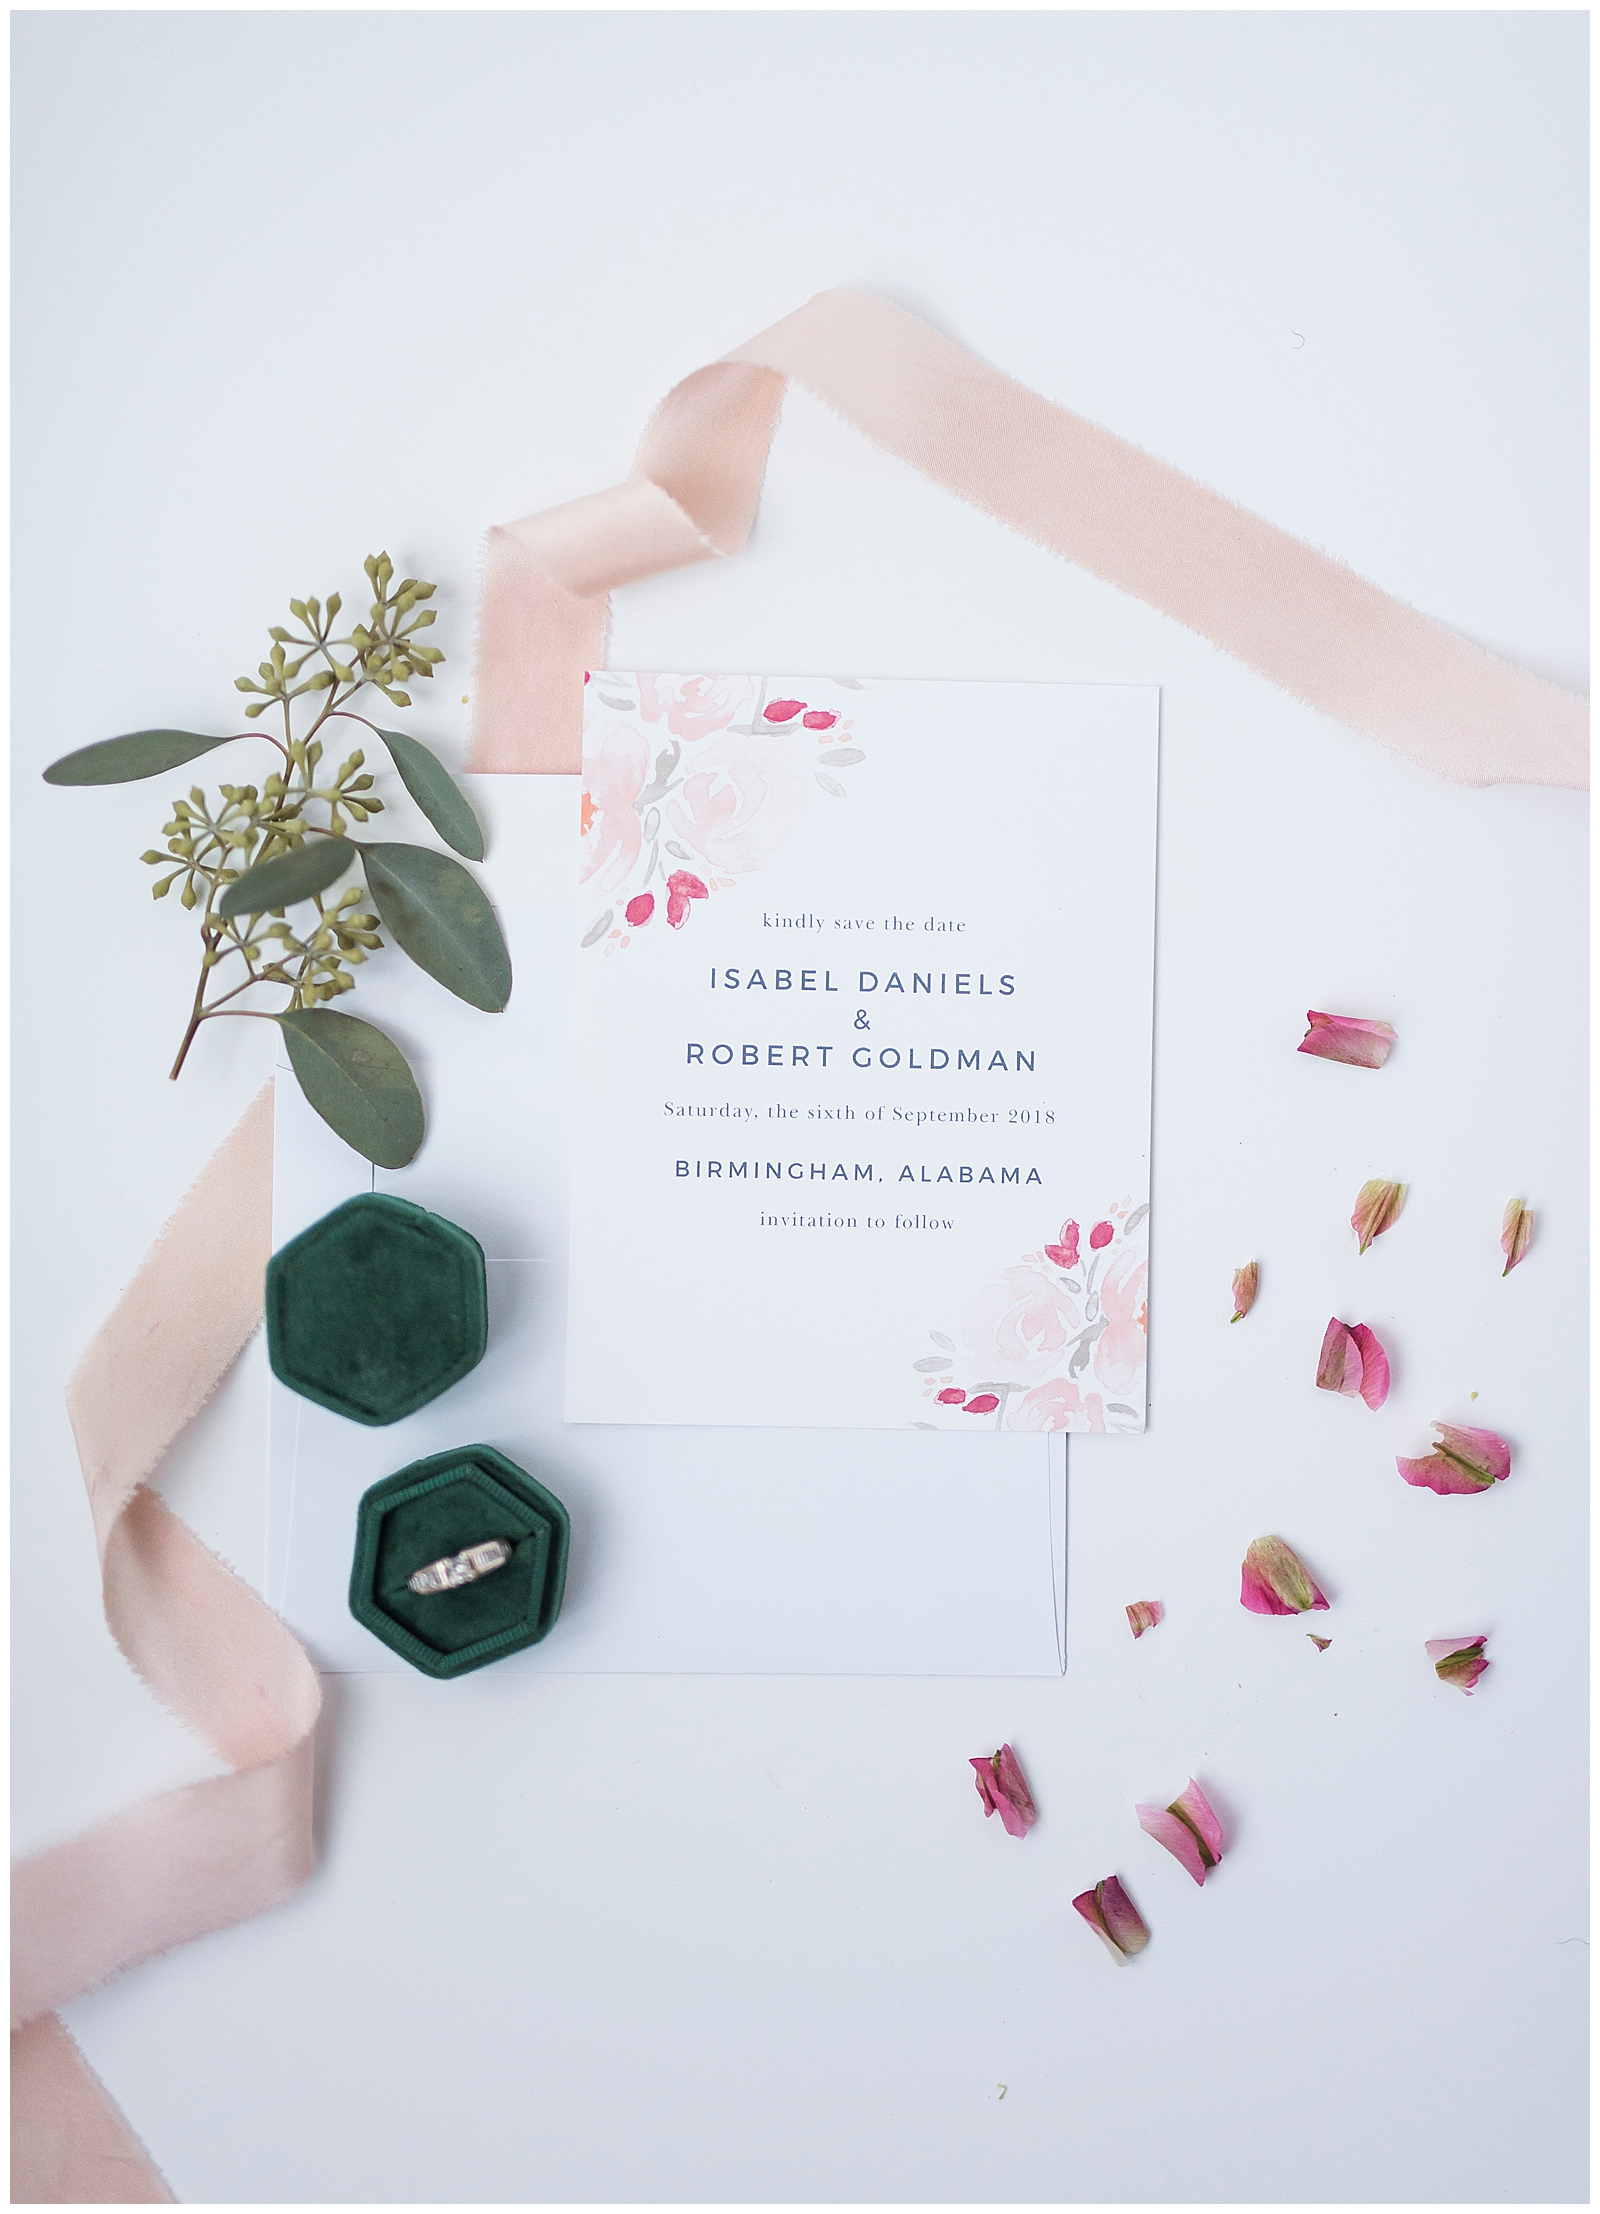 Ordering Save the Dates for your Wedding with Basic Invite, Rachel Driskell Photography